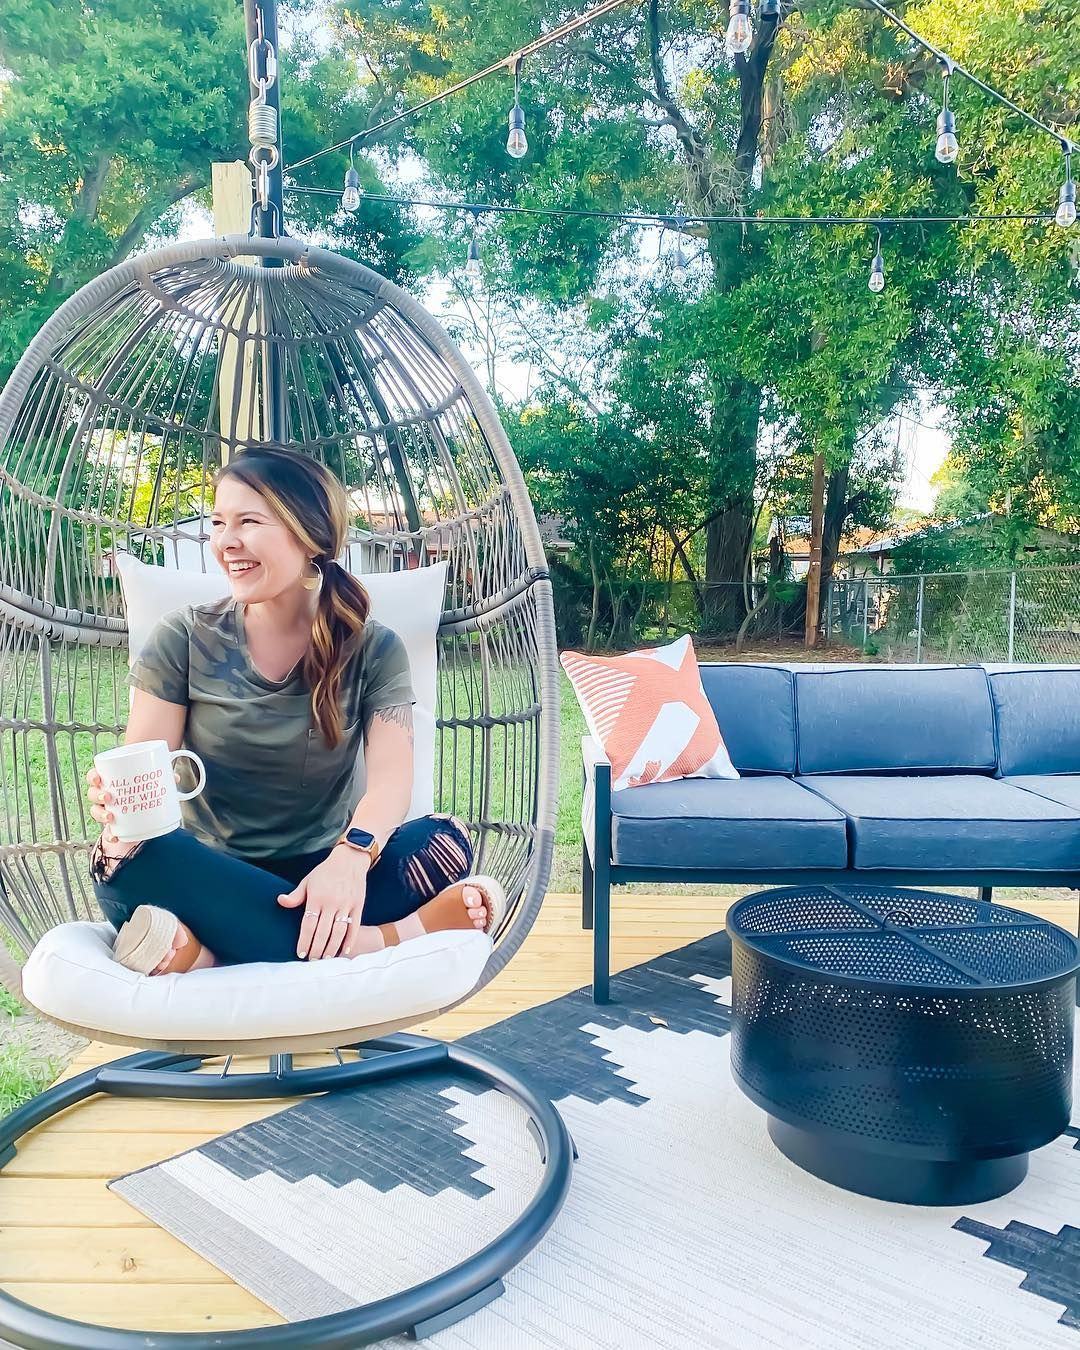 Target Egg Chair Outdoor space, Quiet time, Instagram